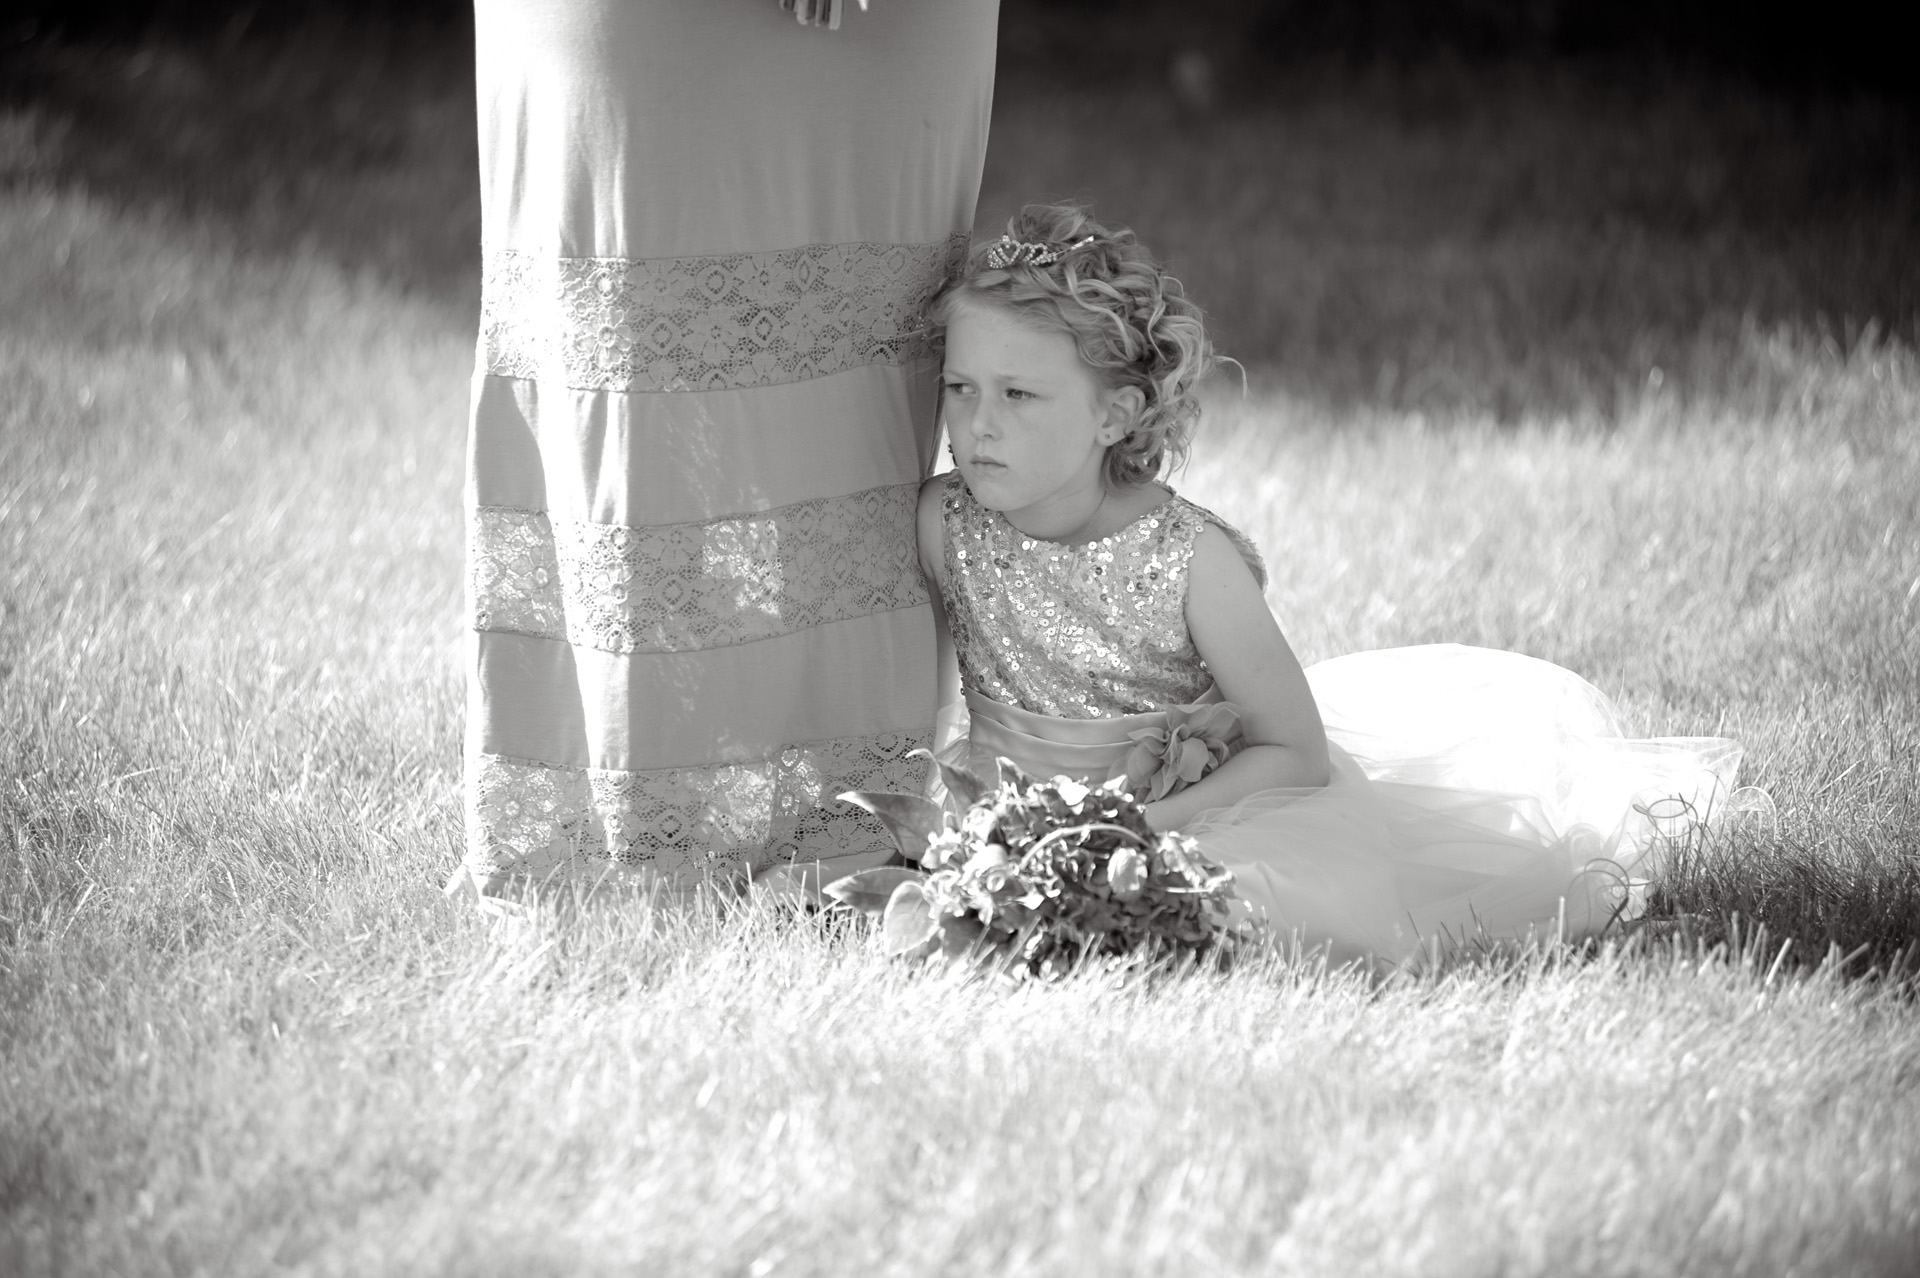 budget conscience brides featuring contemporary and Pinterest worthy wedding photographs in Michigan highlights moving away from Pinterest to creating your unique wedding photography showing the flower girl wilting and finding shade in her mother's shadow during a hot, outdoors Michigan wedding that emphasized photojournalist's moments and kept the bride on her budget.